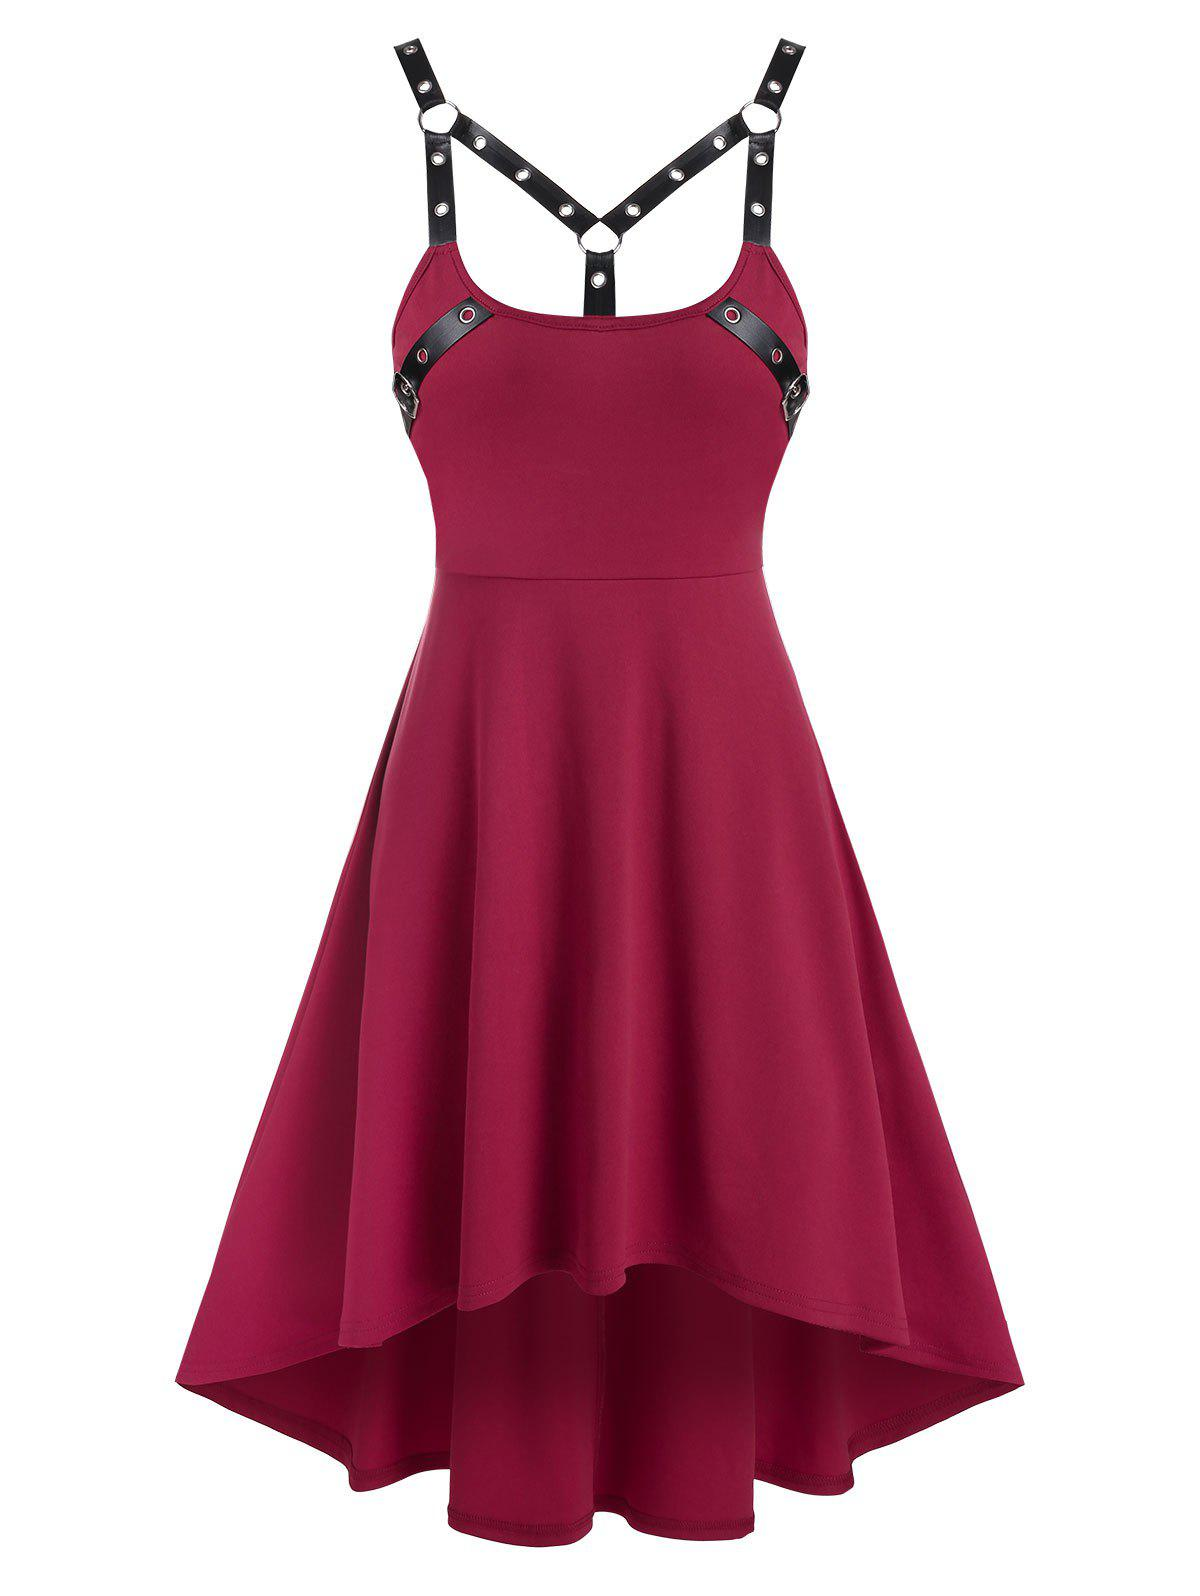 Online Sleeveless Harness Insert High Low Gothic Dress